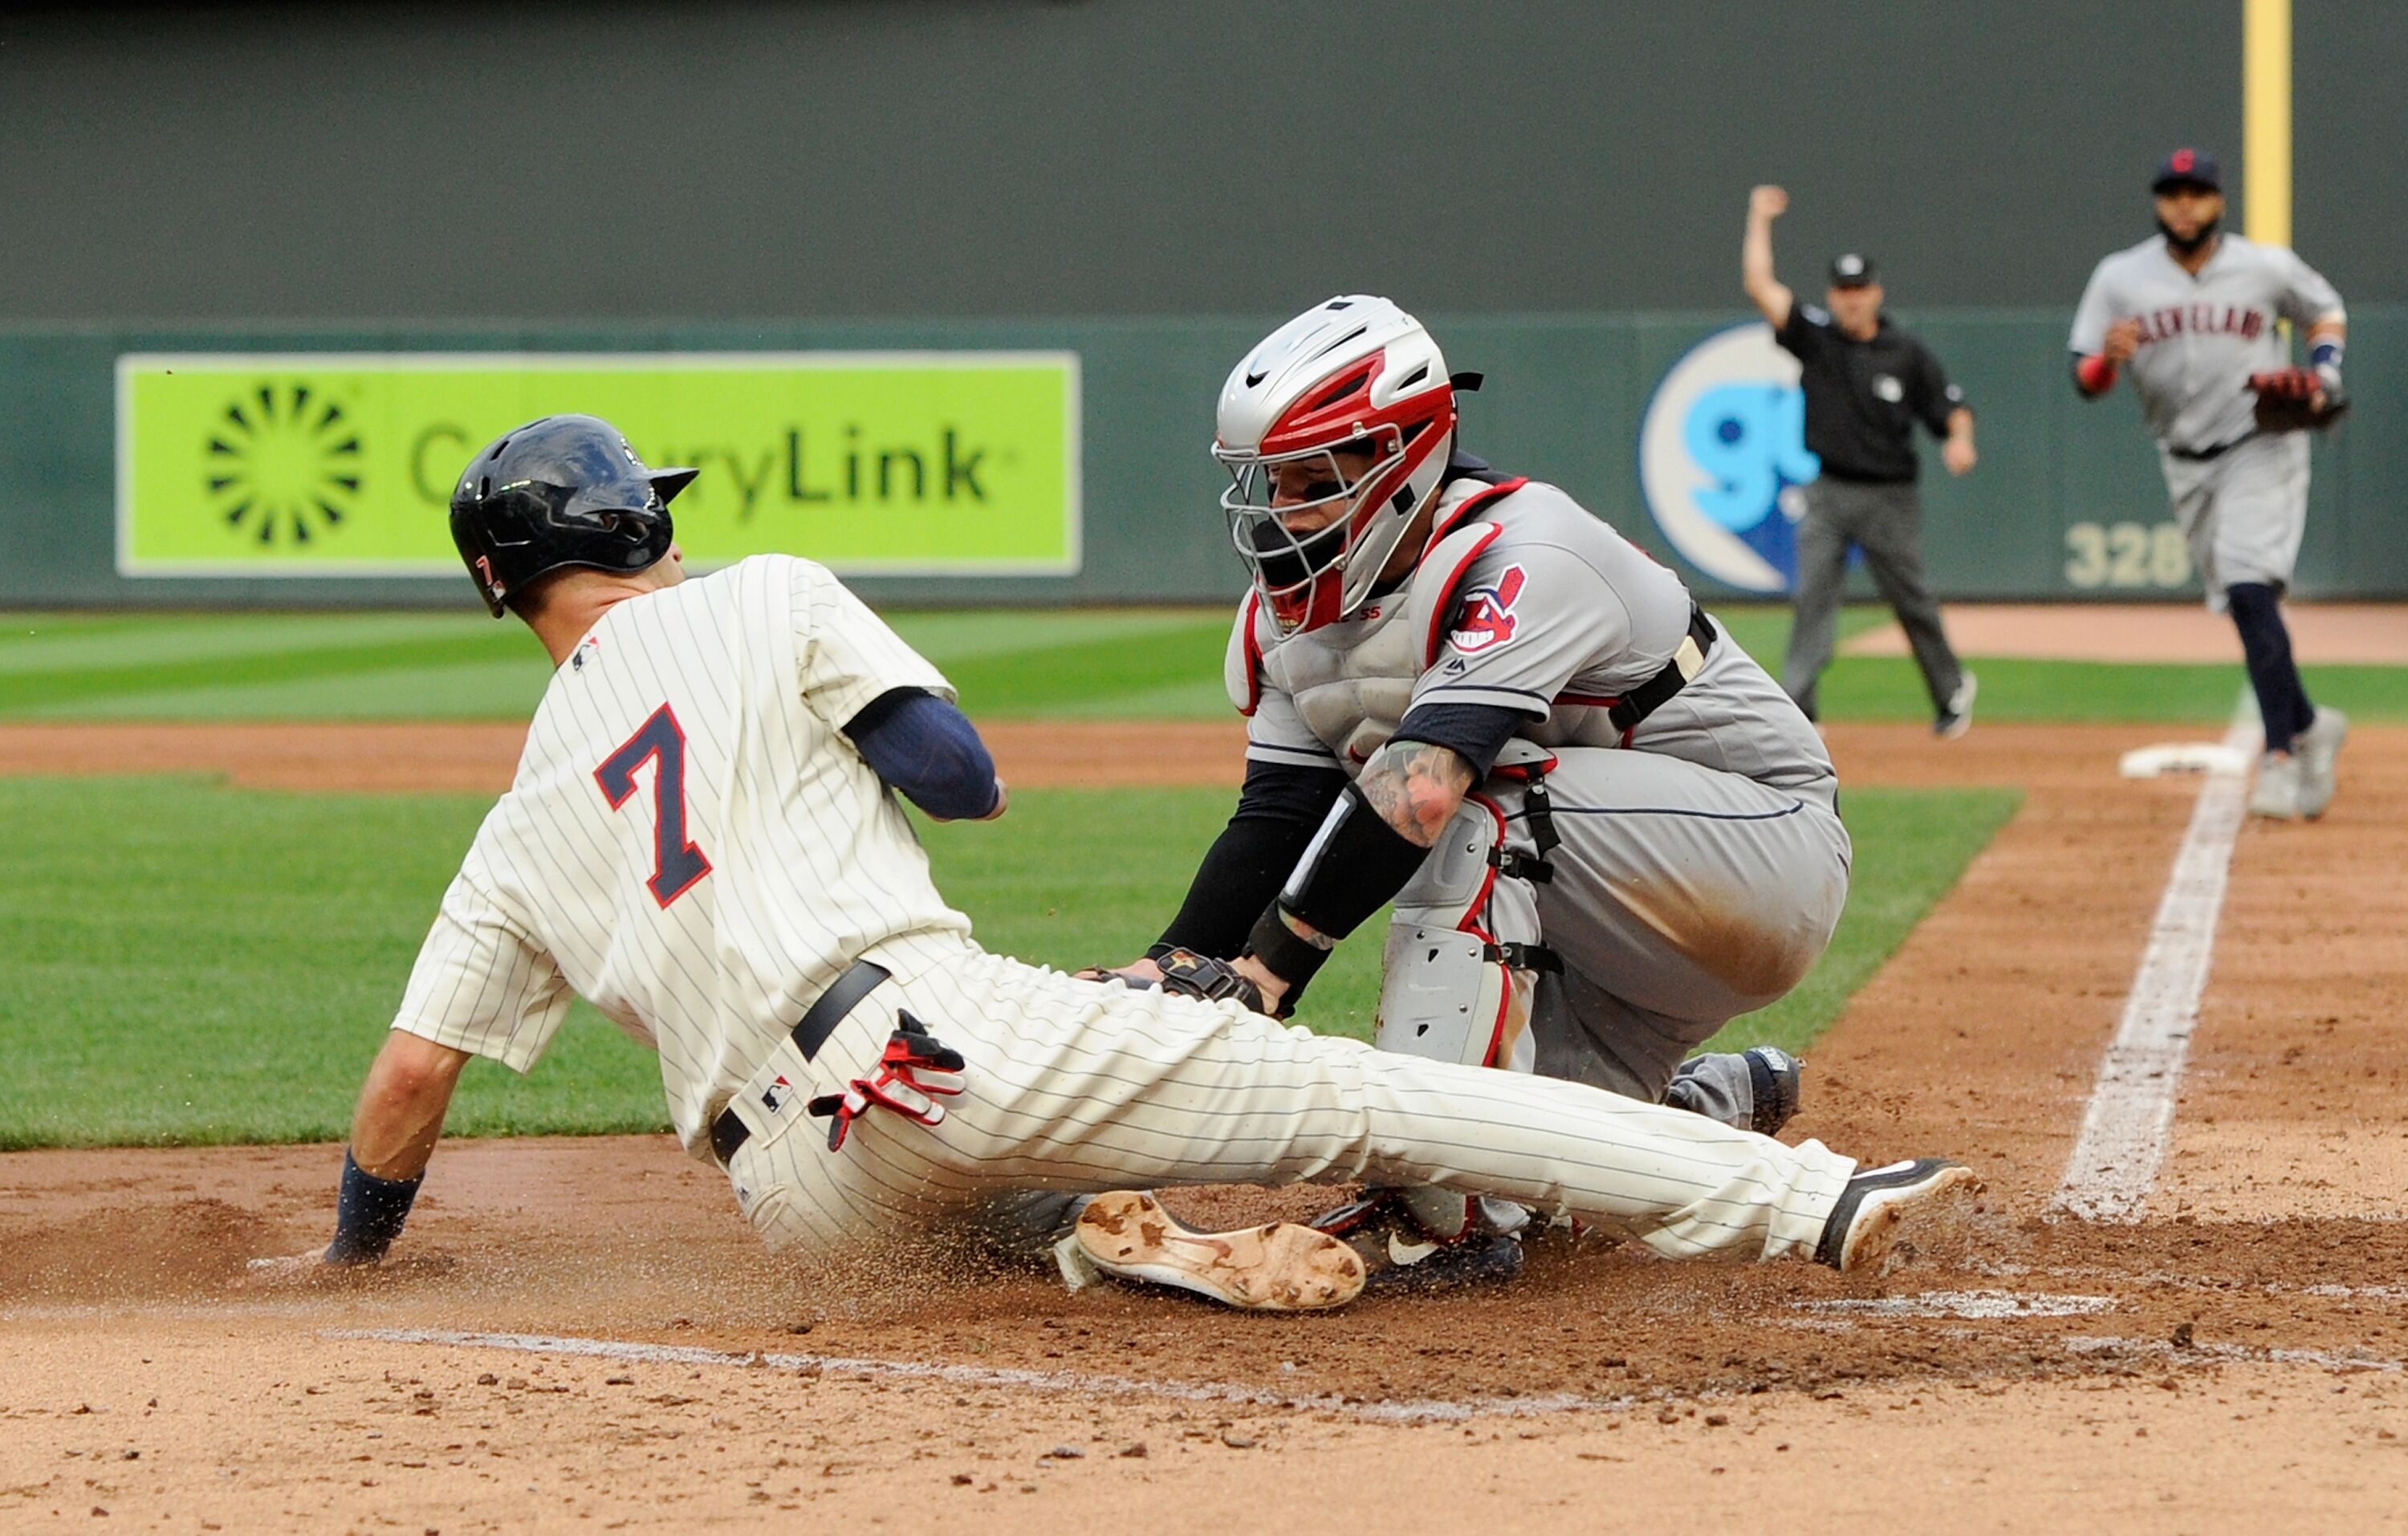 834111914-cleveland-indians-v-minnesota-twins-game-two.jpg